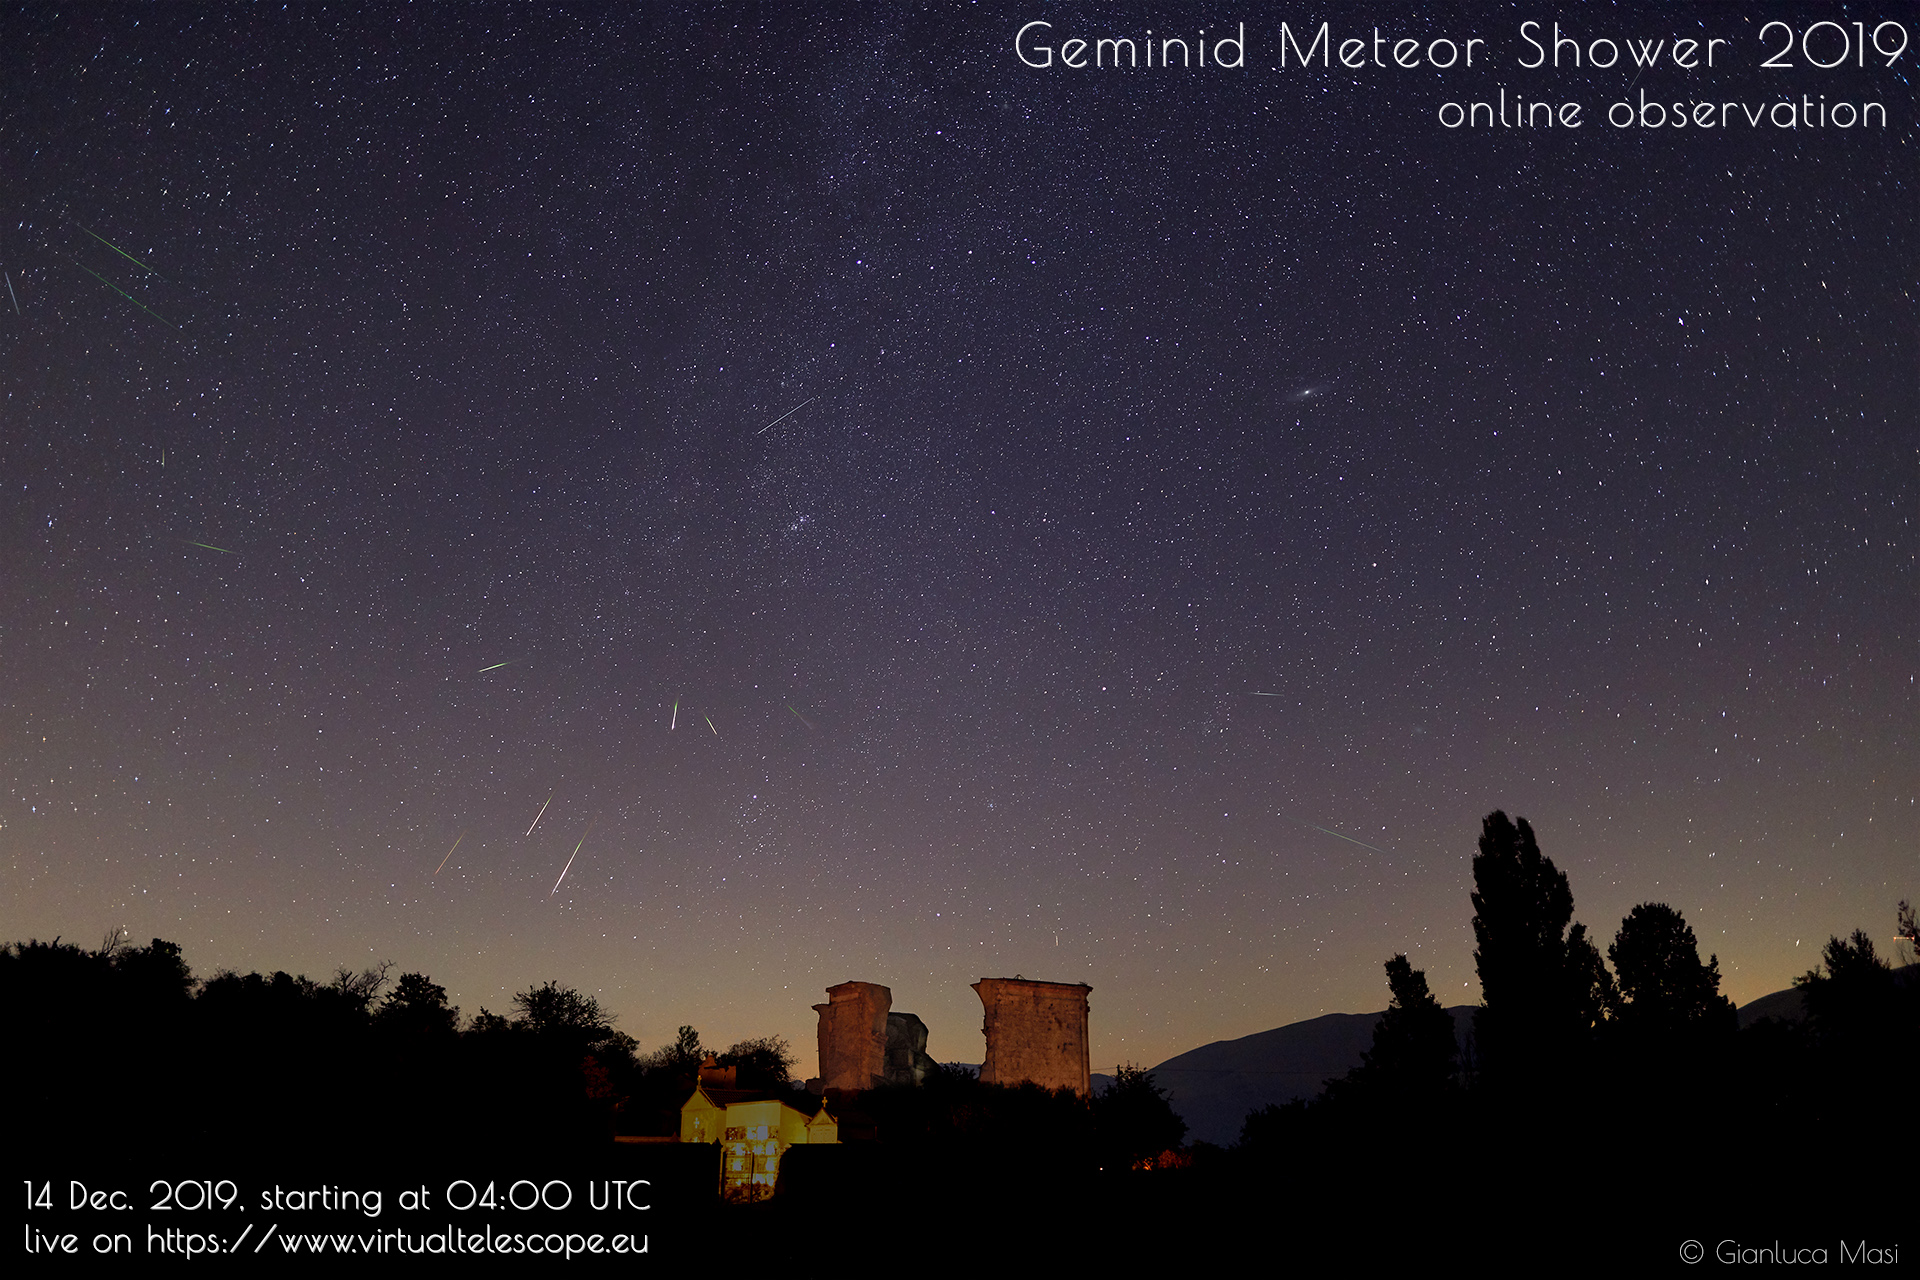 Geminids 2019: poster of the event